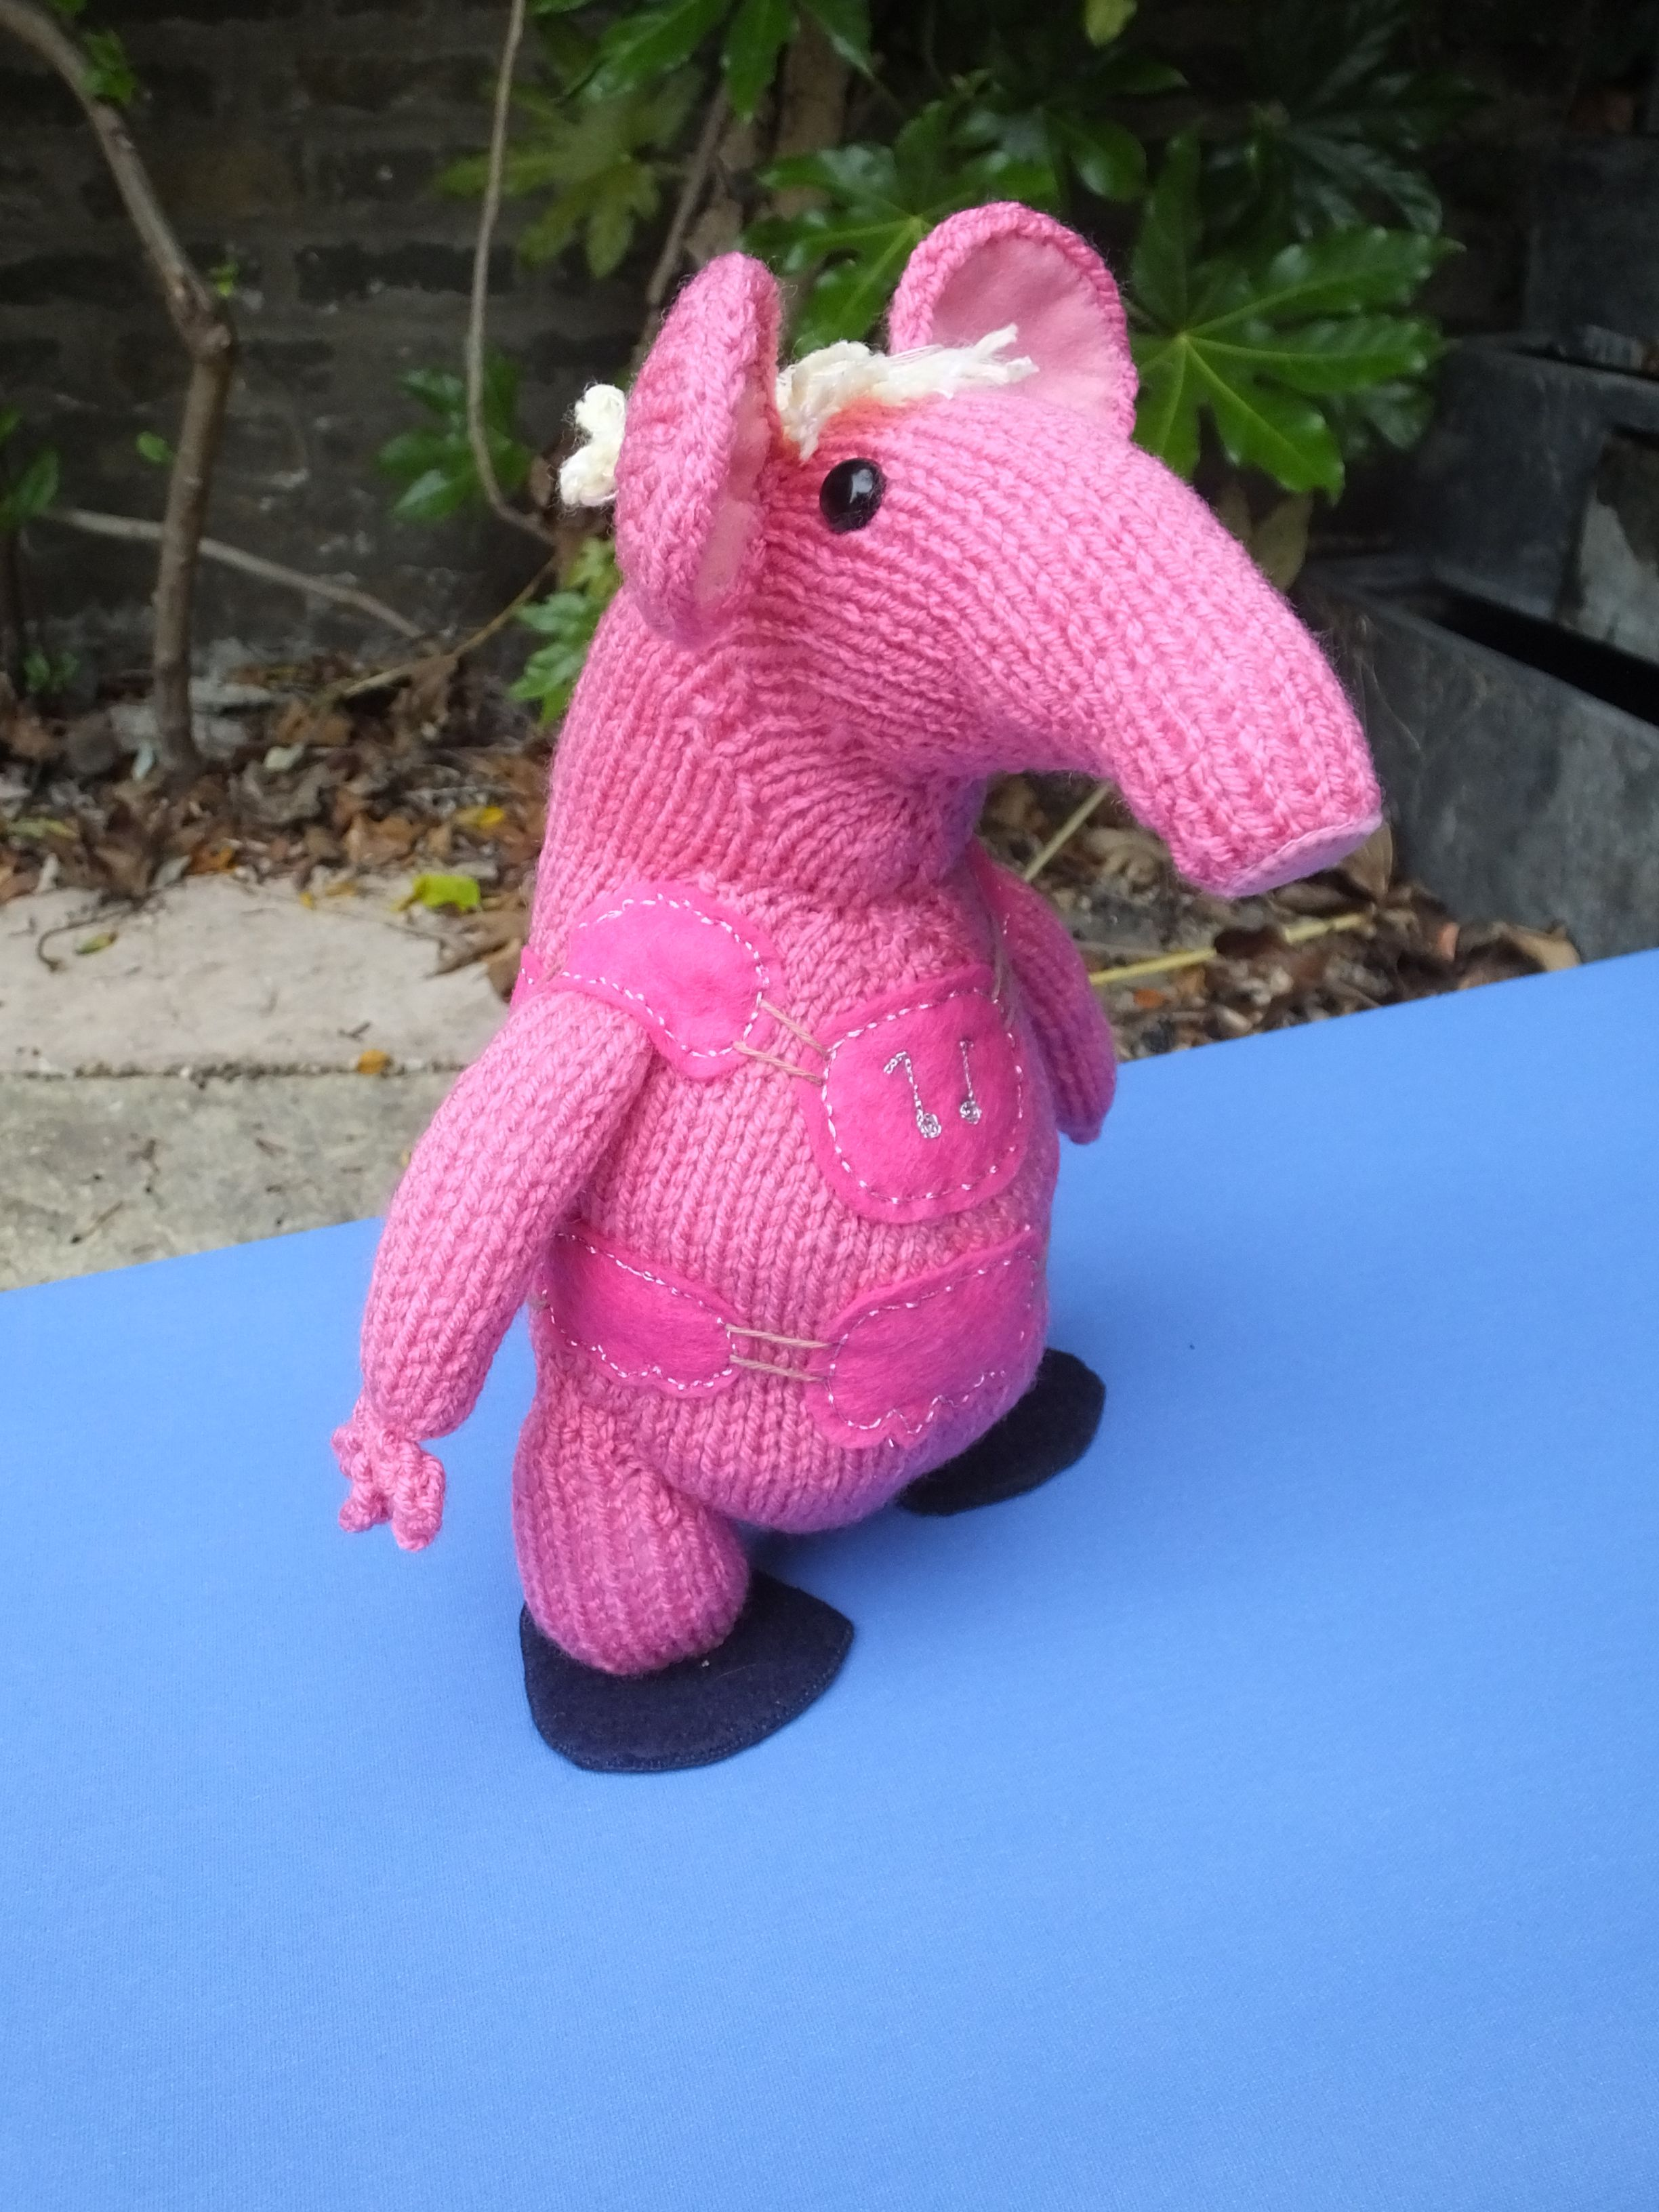 File:Clanger 7488.JPG - Wikimedia Commons